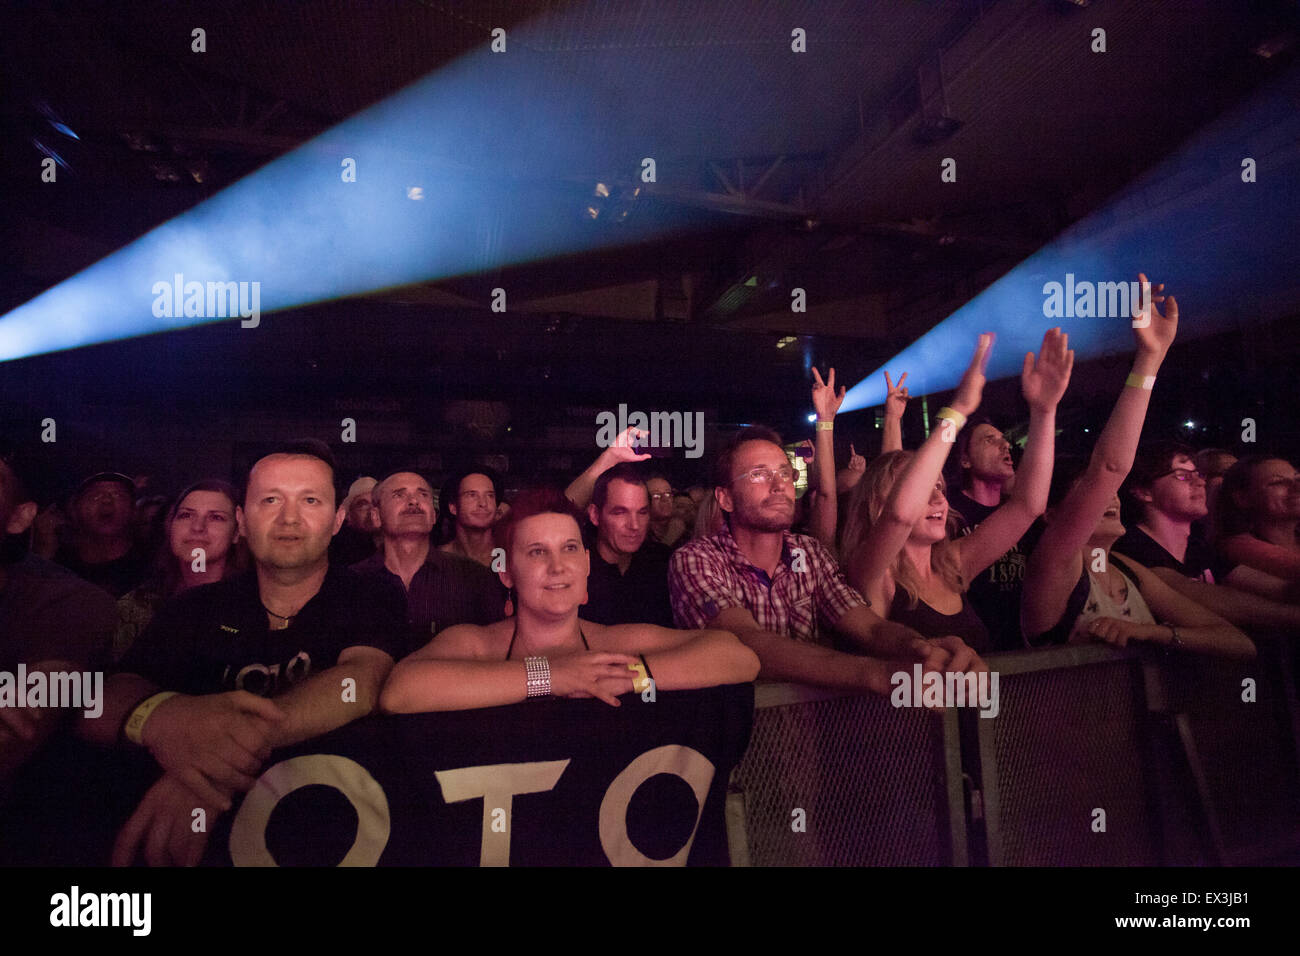 Fans at concert of american Rock band Toto Stock Photo: 84902805 - Alamy